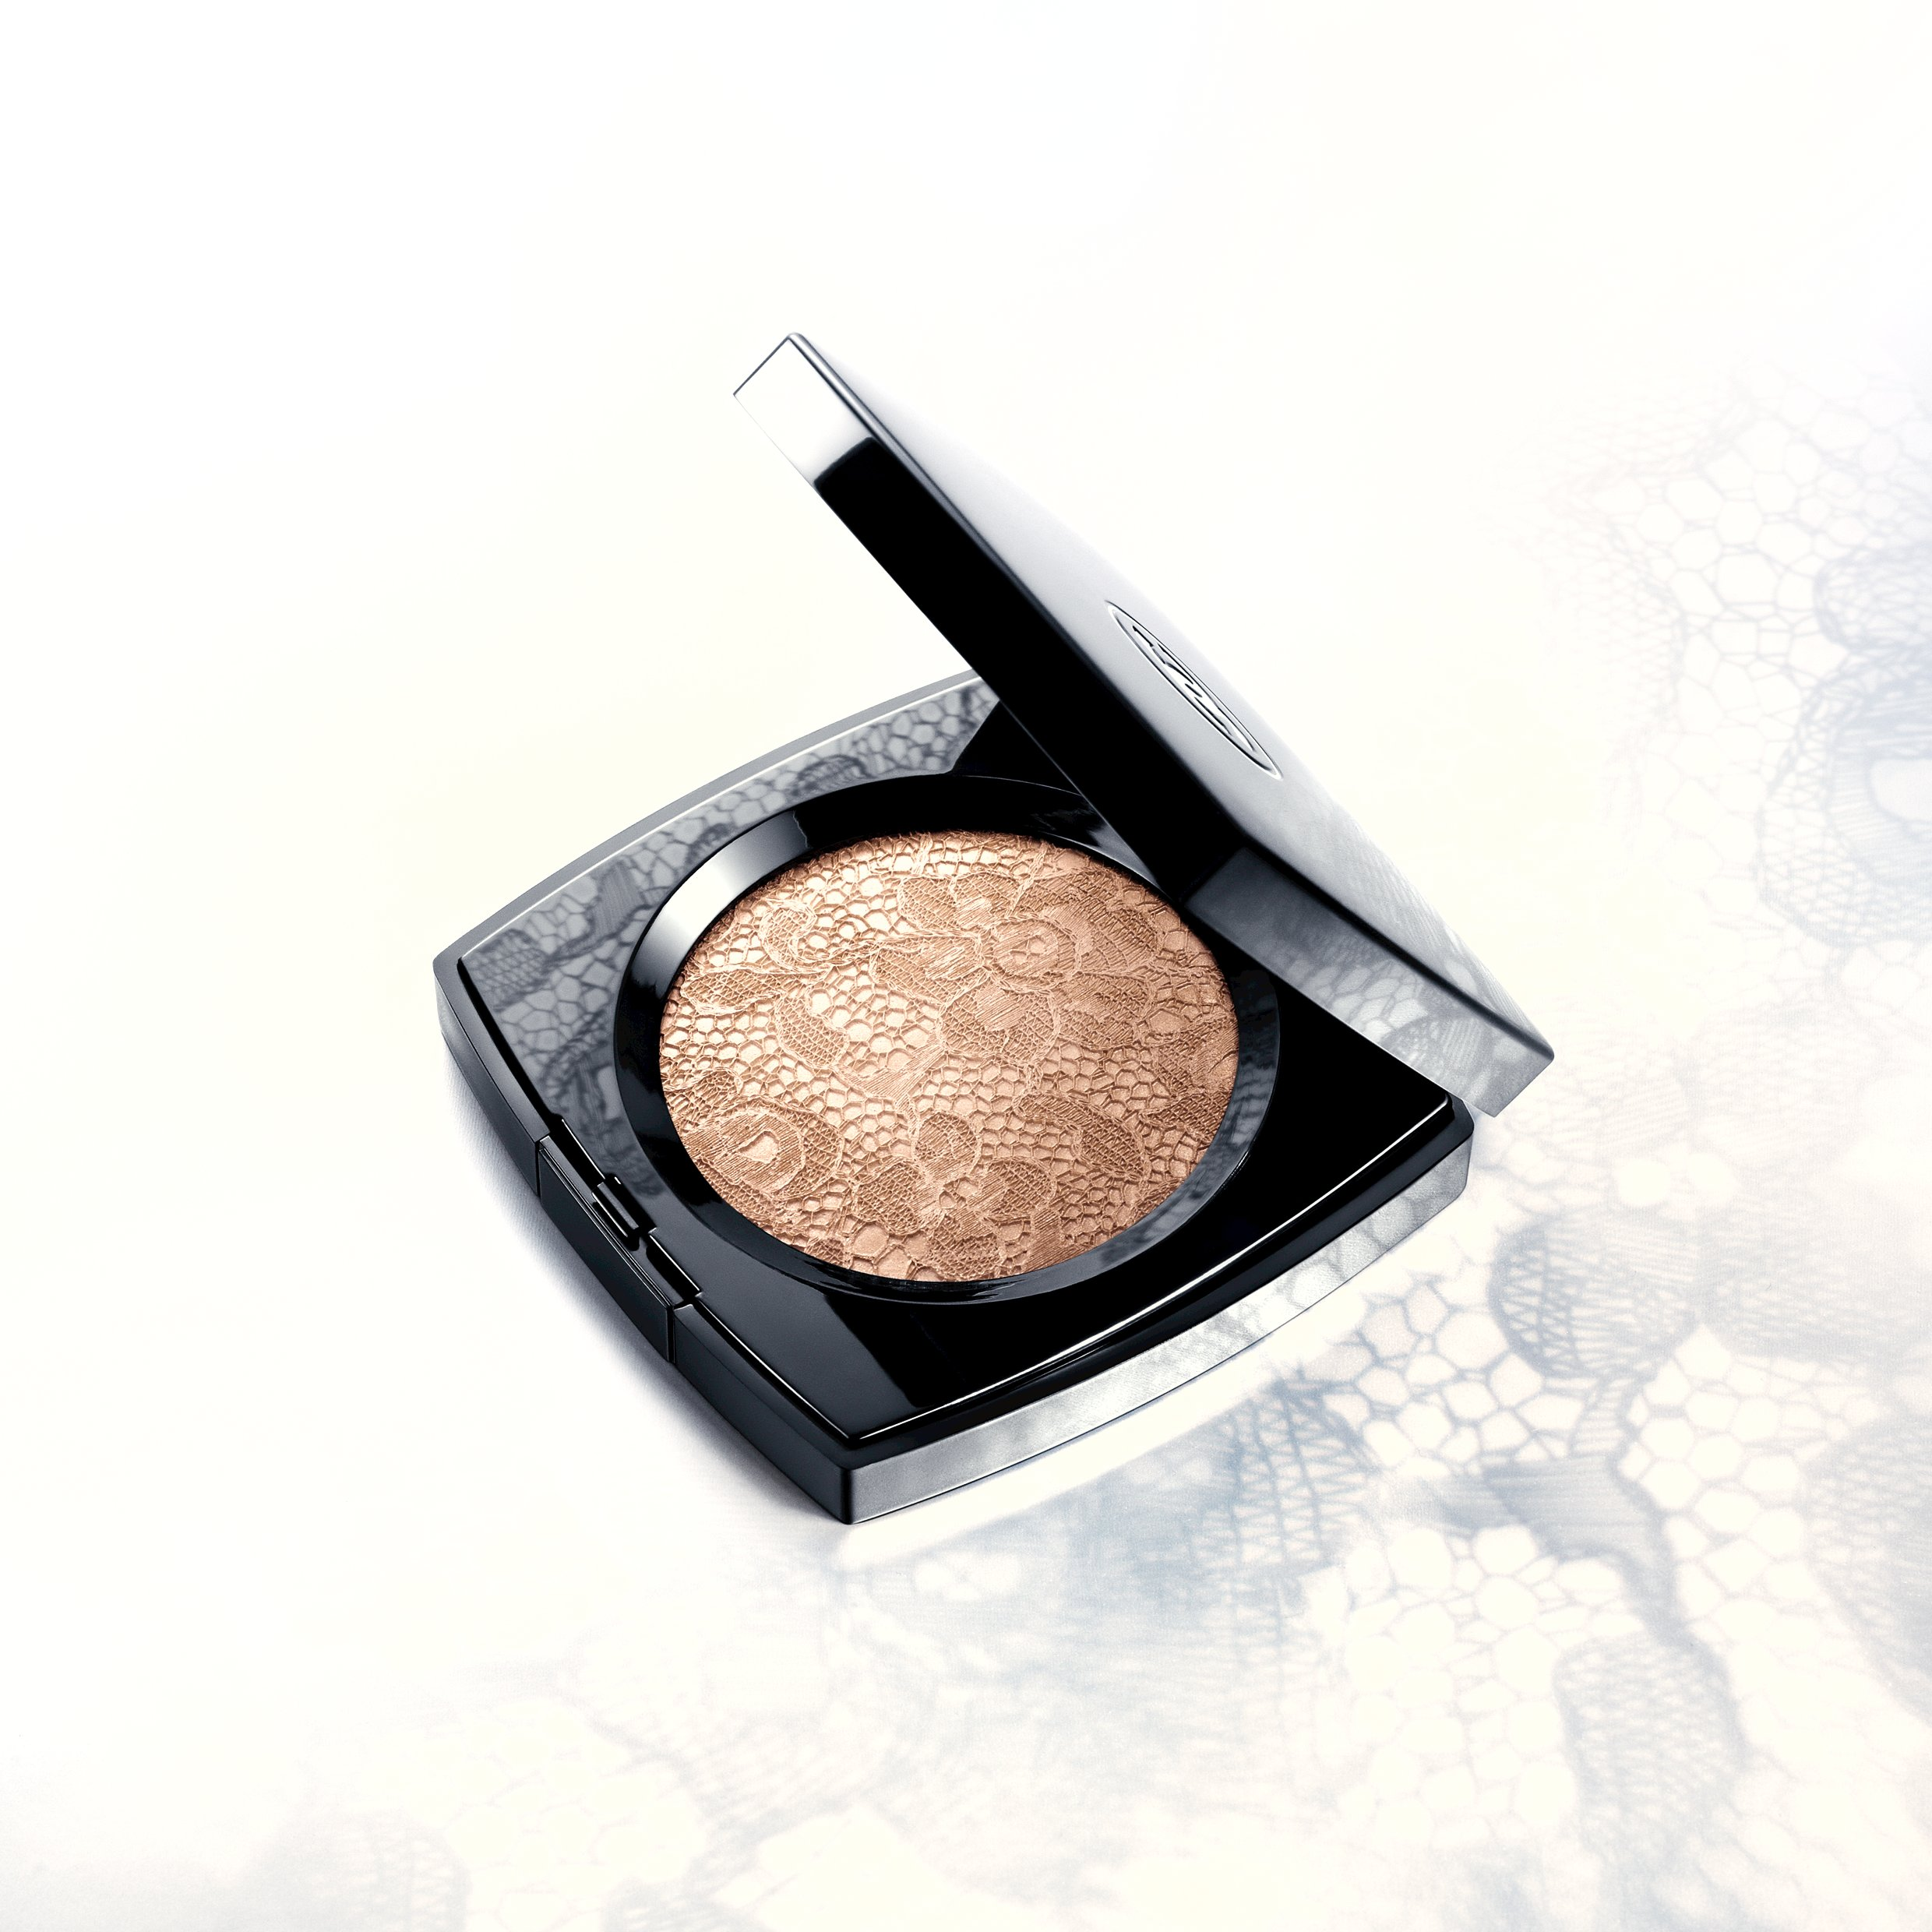 Chanel presents Illuminating Powder in lace edition for spring